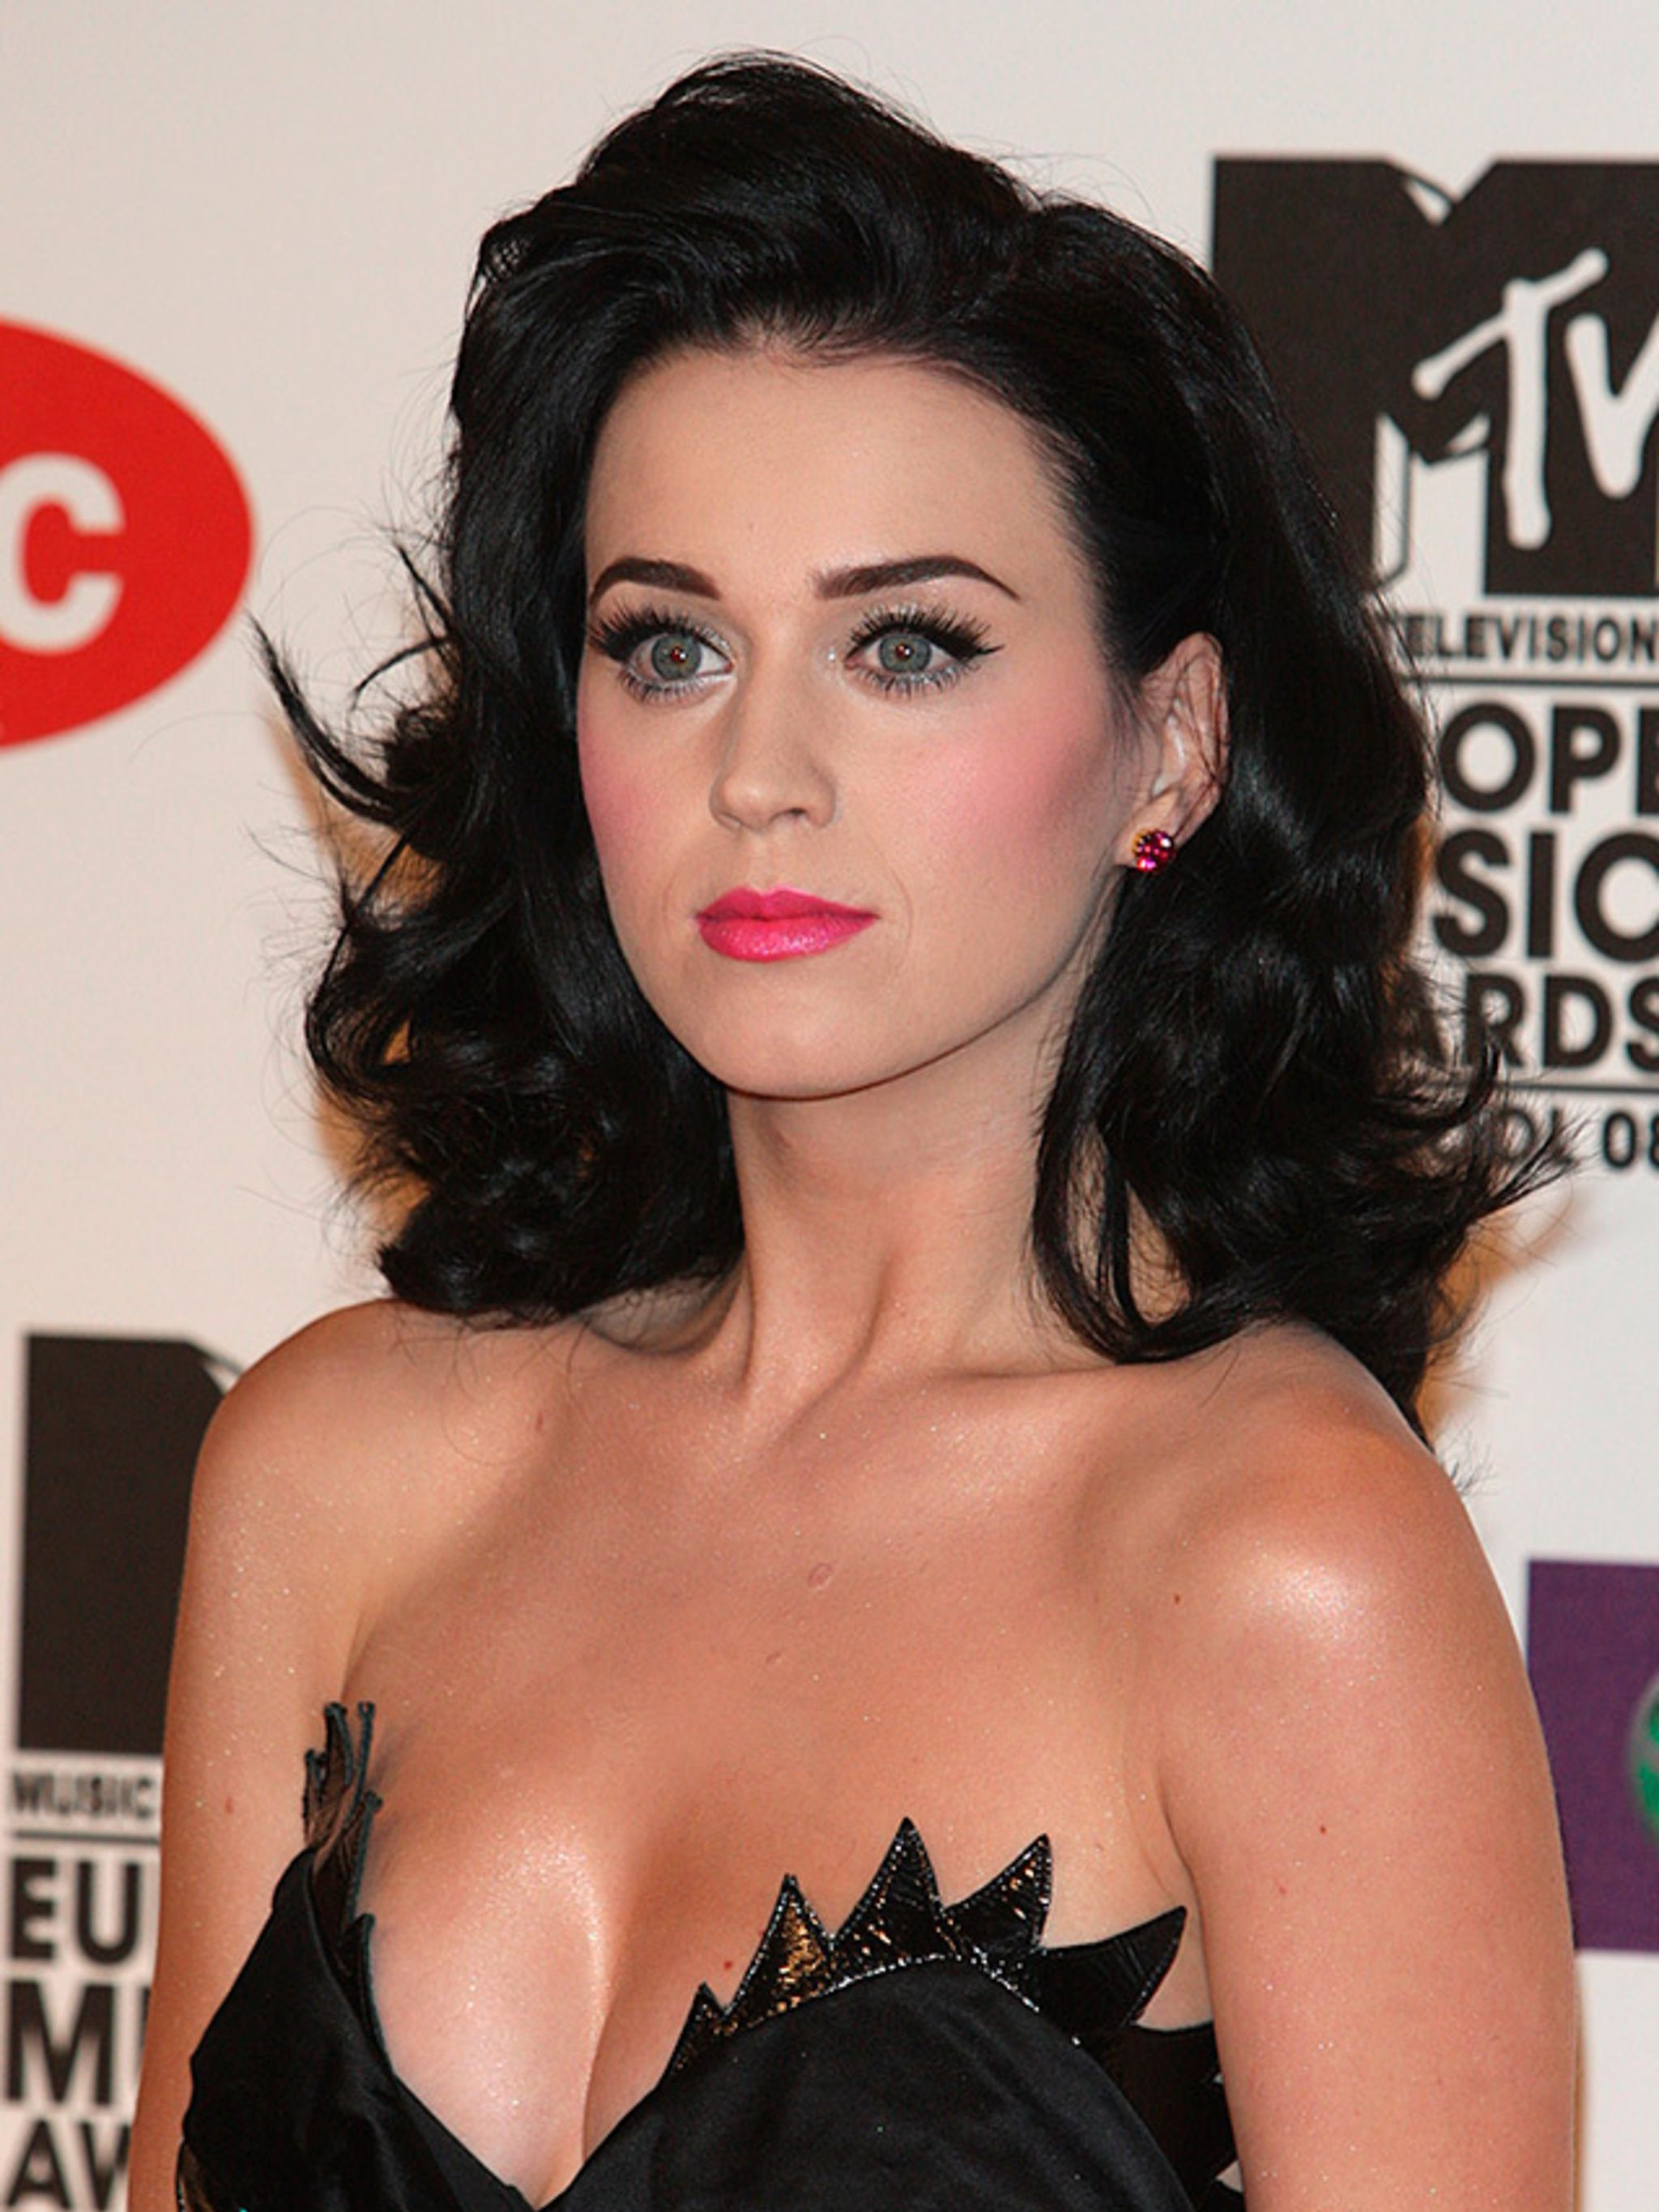 Katy Perry's MTV Europe hairdo can be yours